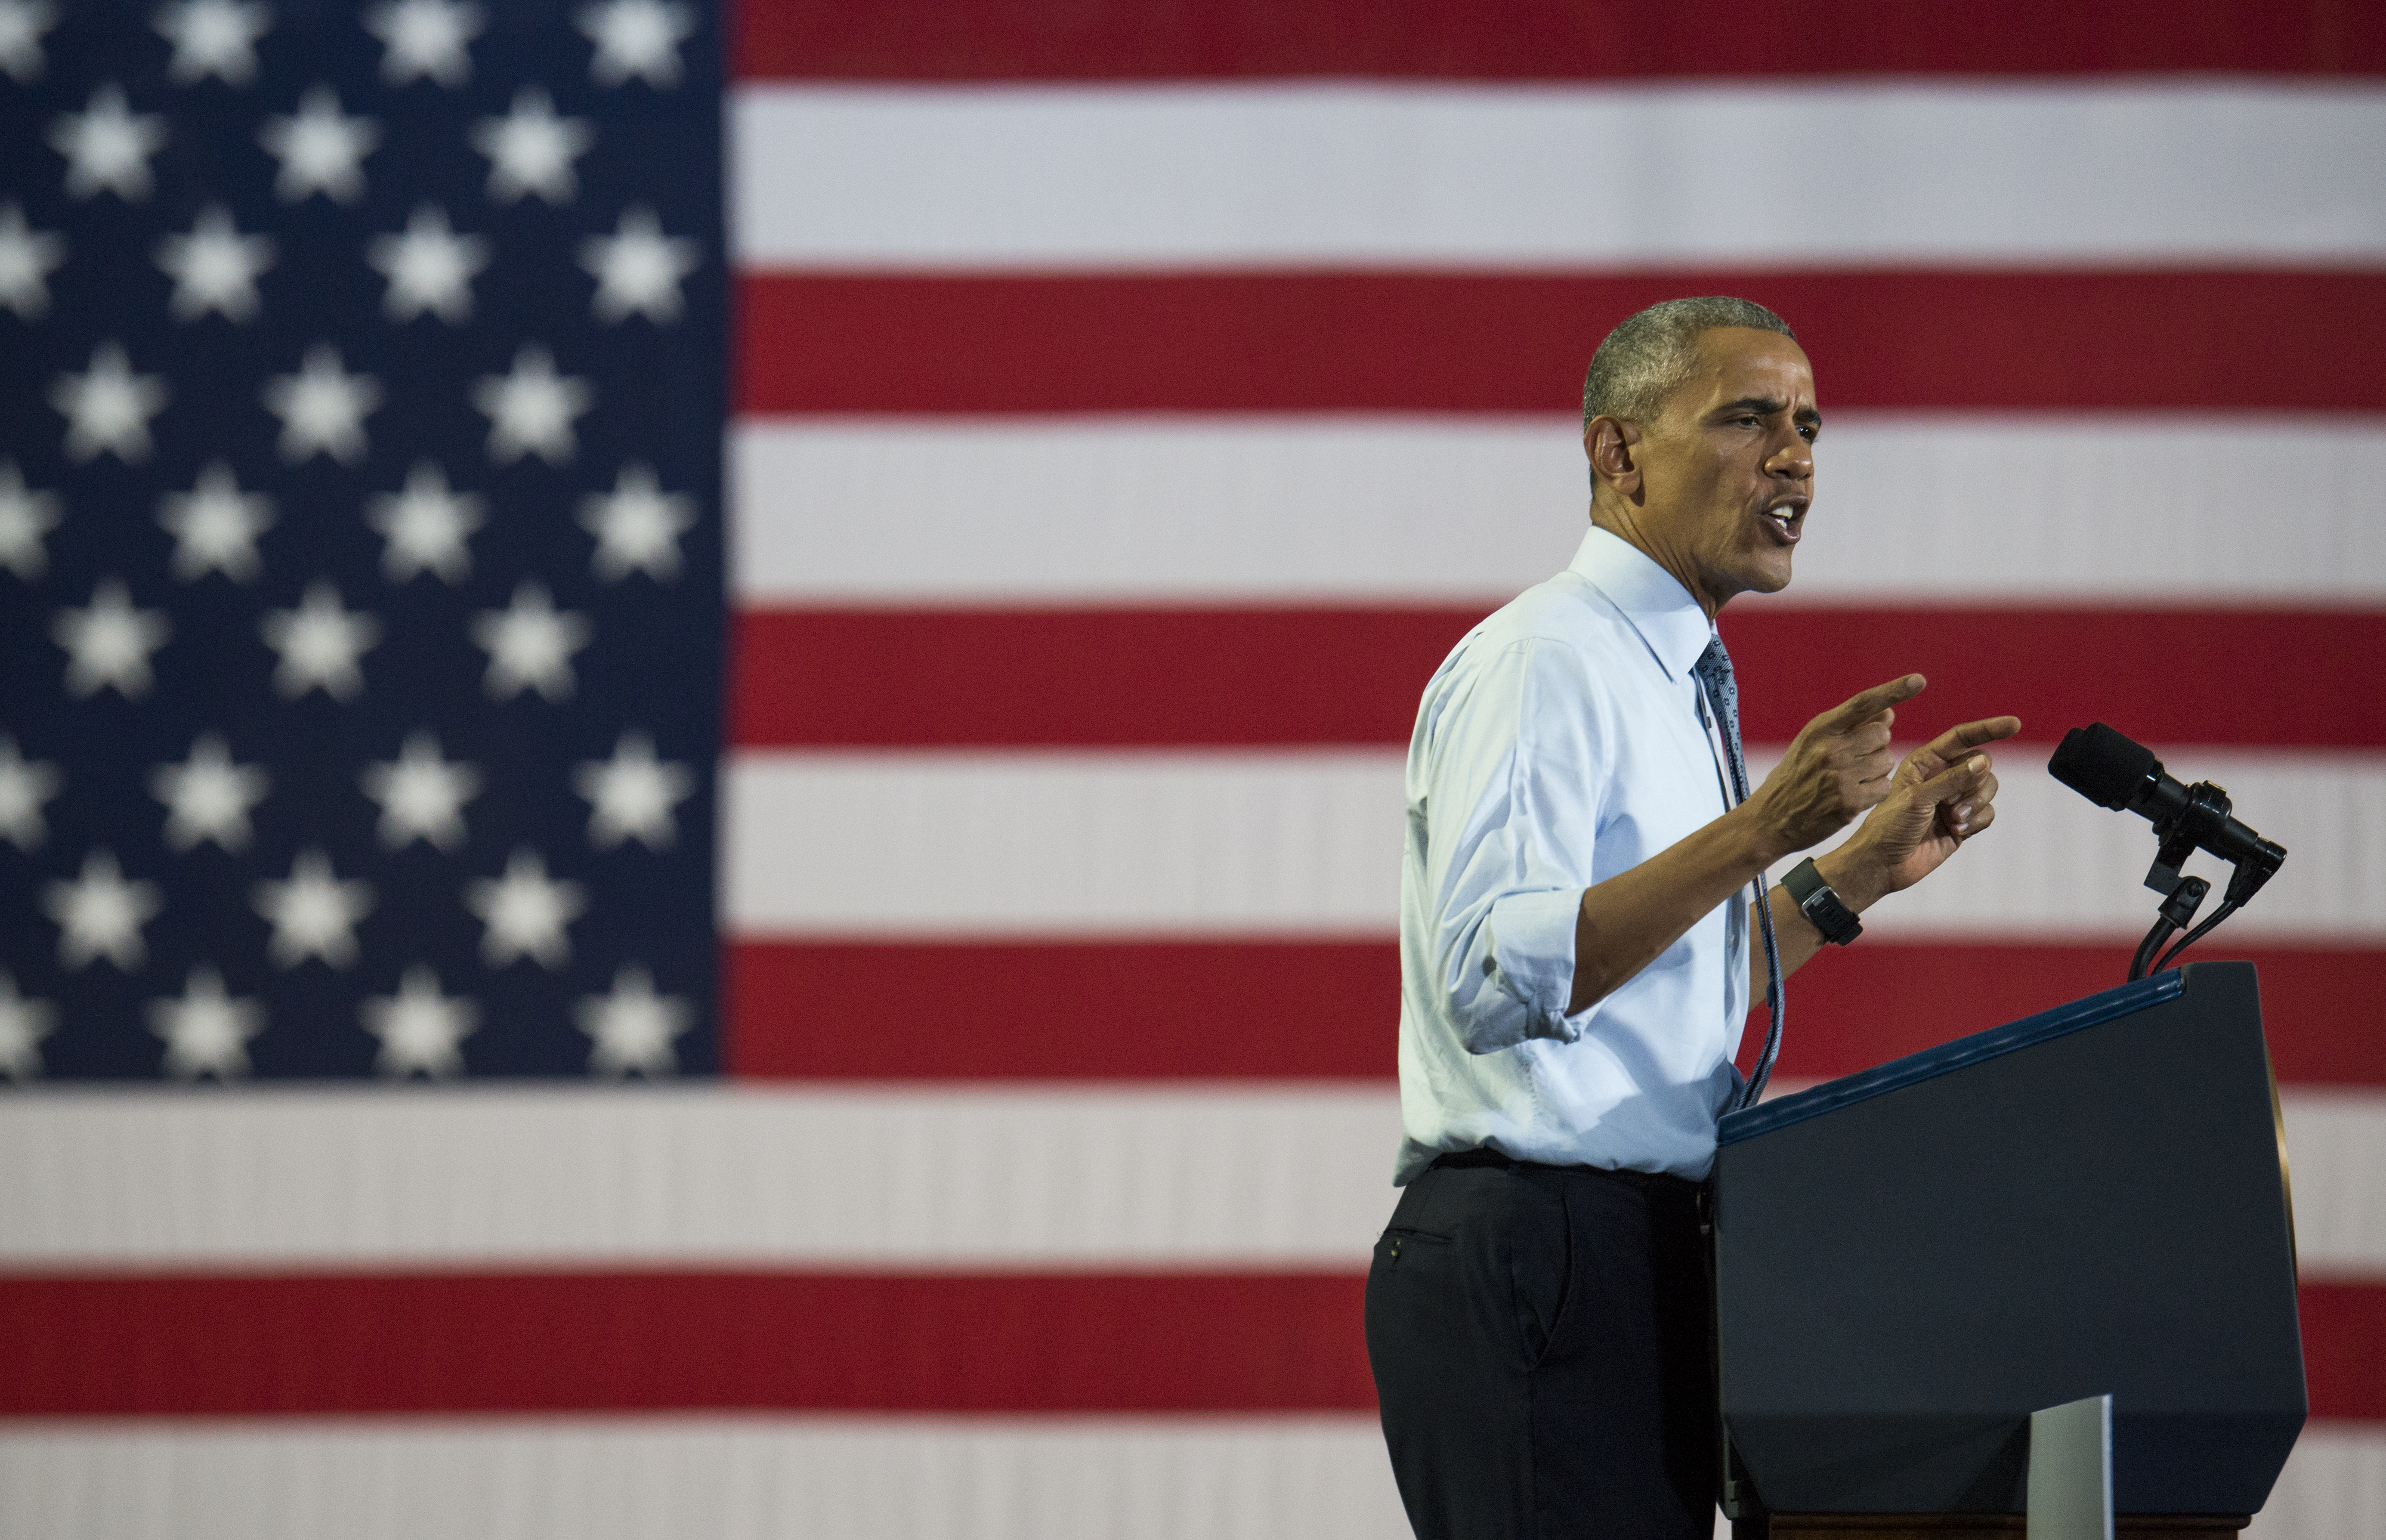 President Obama Campaigns For Hillary Clinton In Ohio